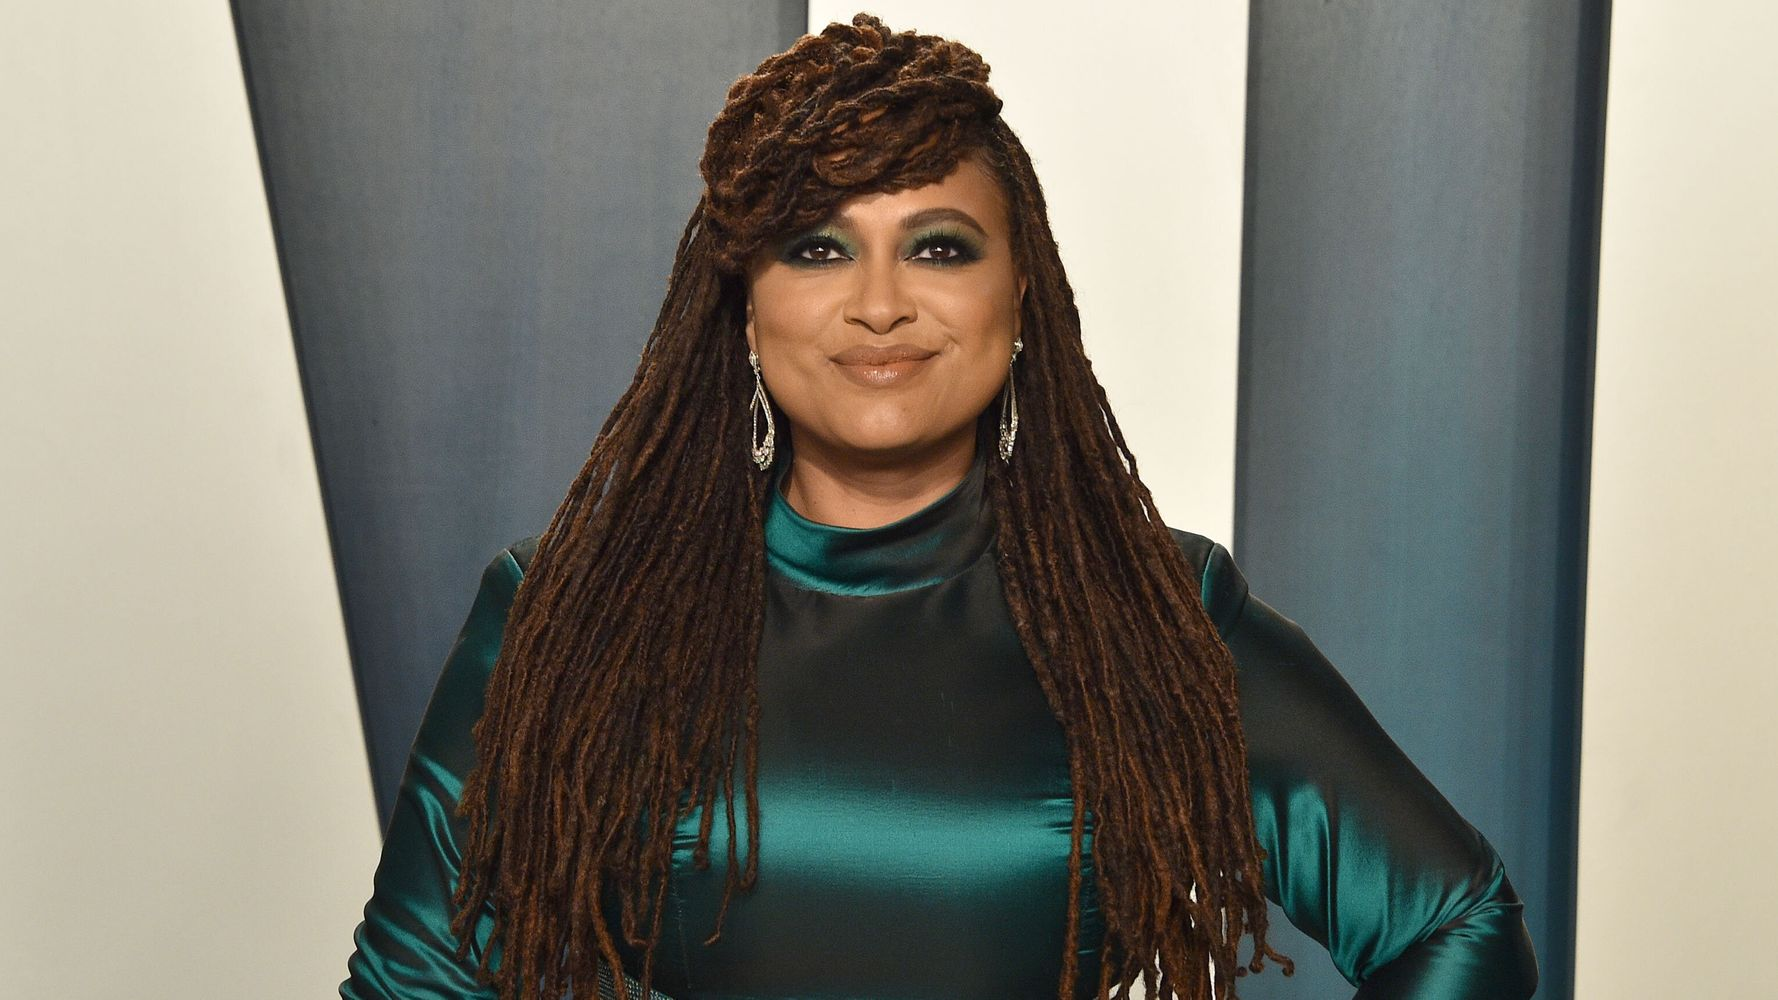 Ava DuVernay On Jaden Michael Portraying Colin Kaepernick: 'Right Side Of History'